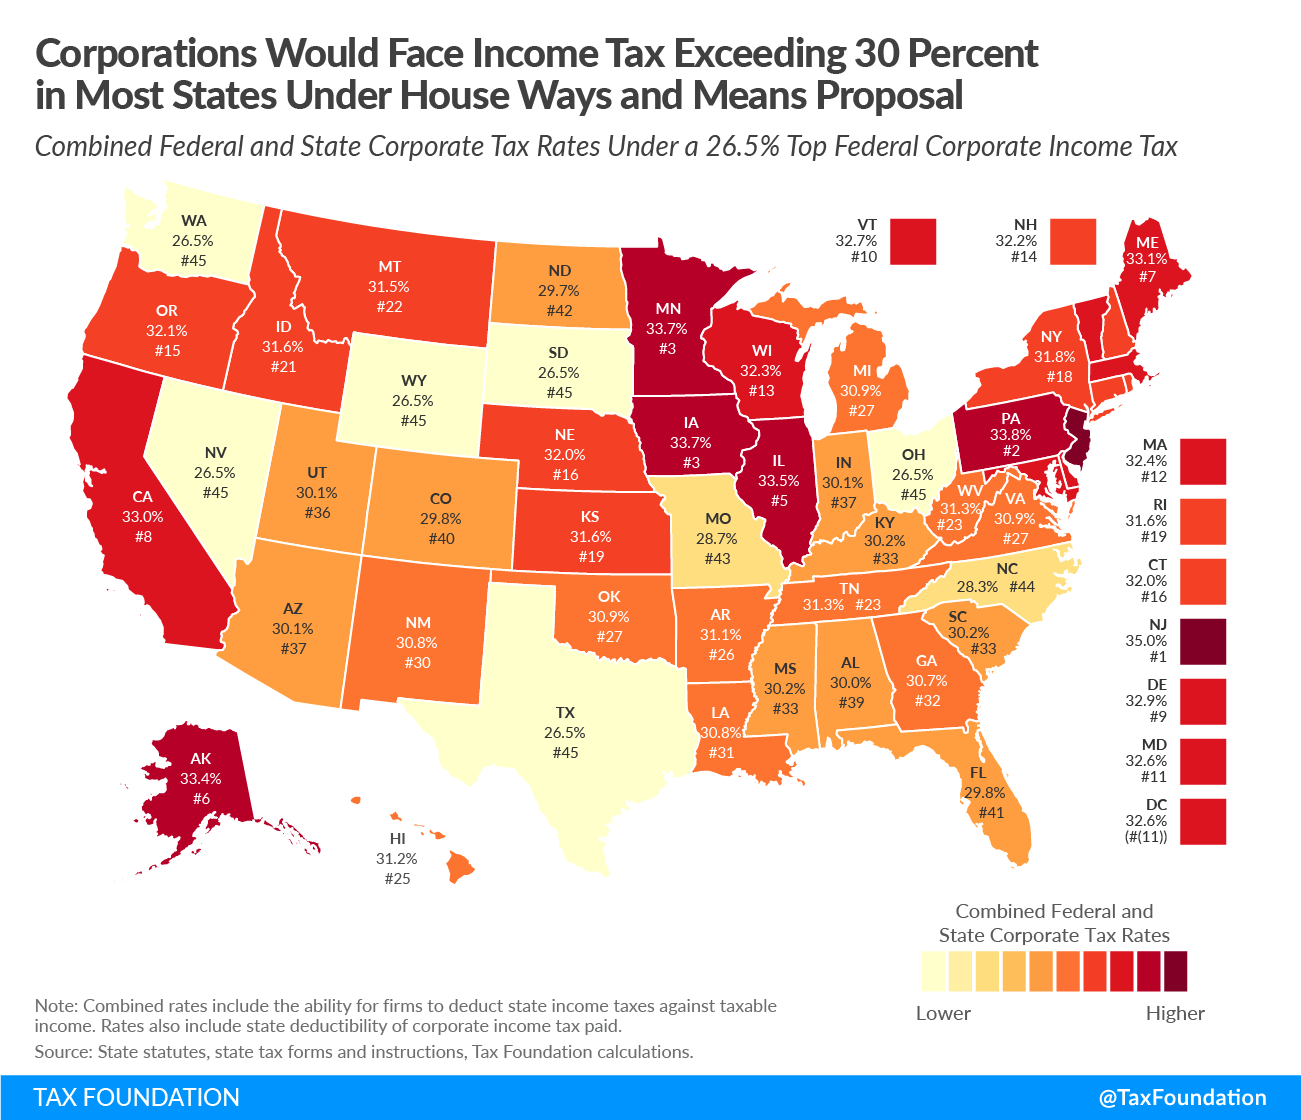 House Democrats Corporate Income Tax Rates by State | Tax Foundation